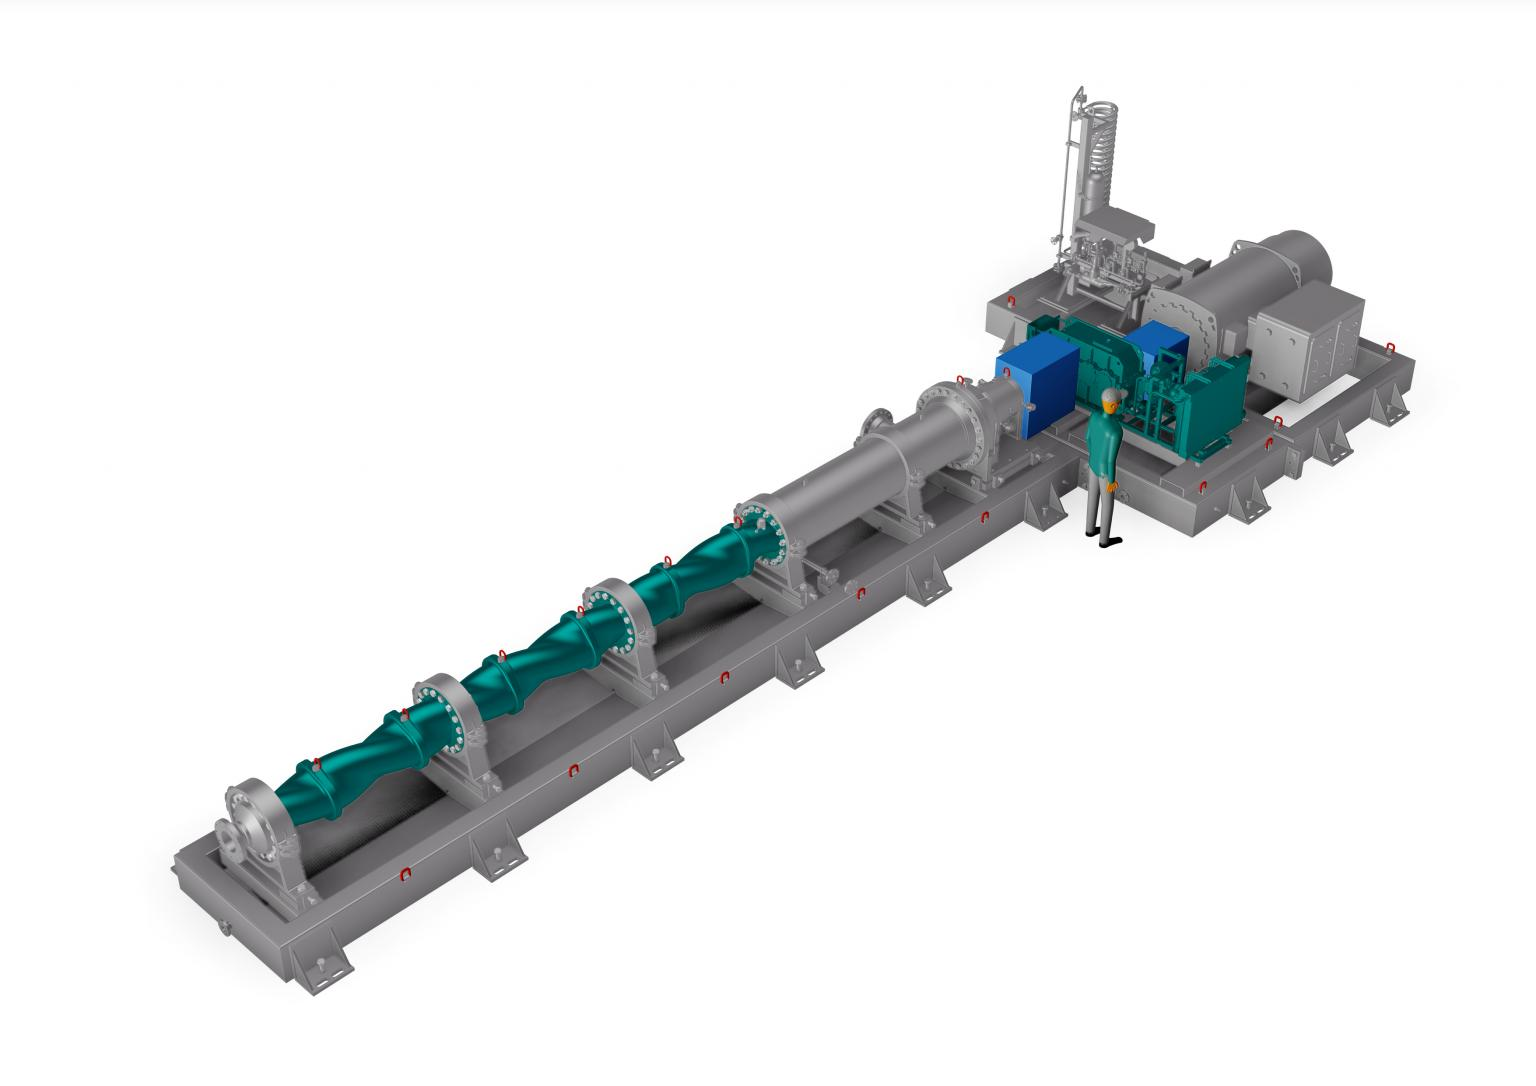 Netzsch has developed its range of L.Cap high- performance pumps for flowrates up to 1000m3/h and pressures up to 20 bar